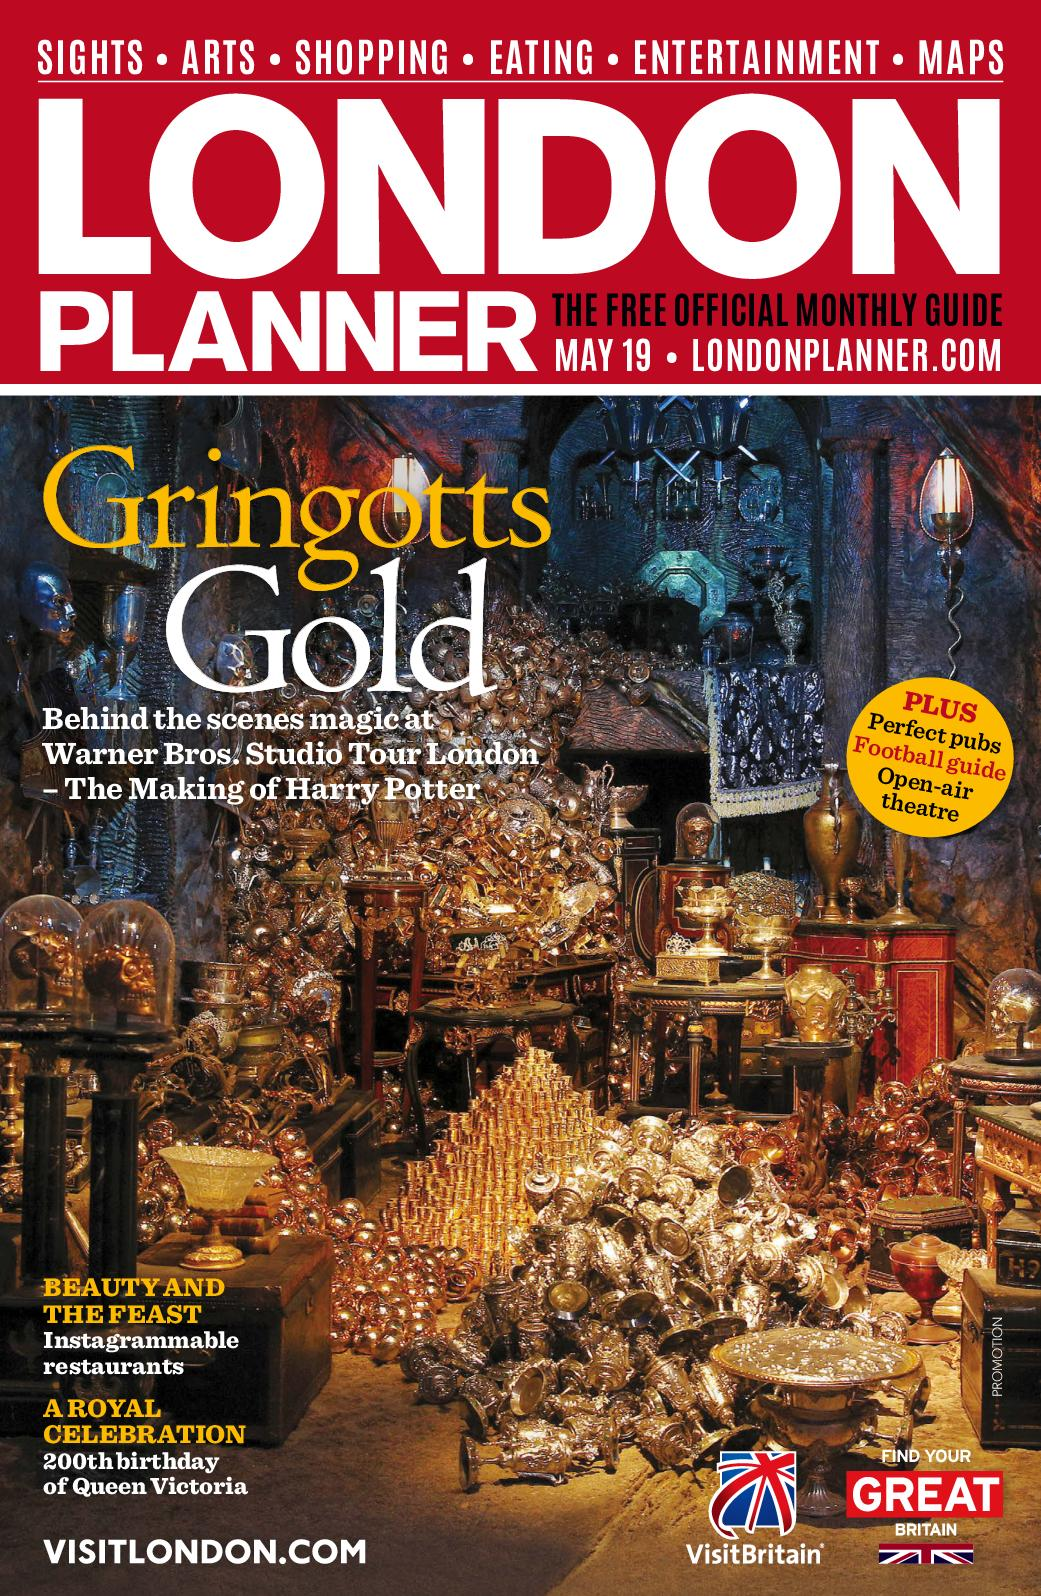 LONDON PLANNER MAY 2019